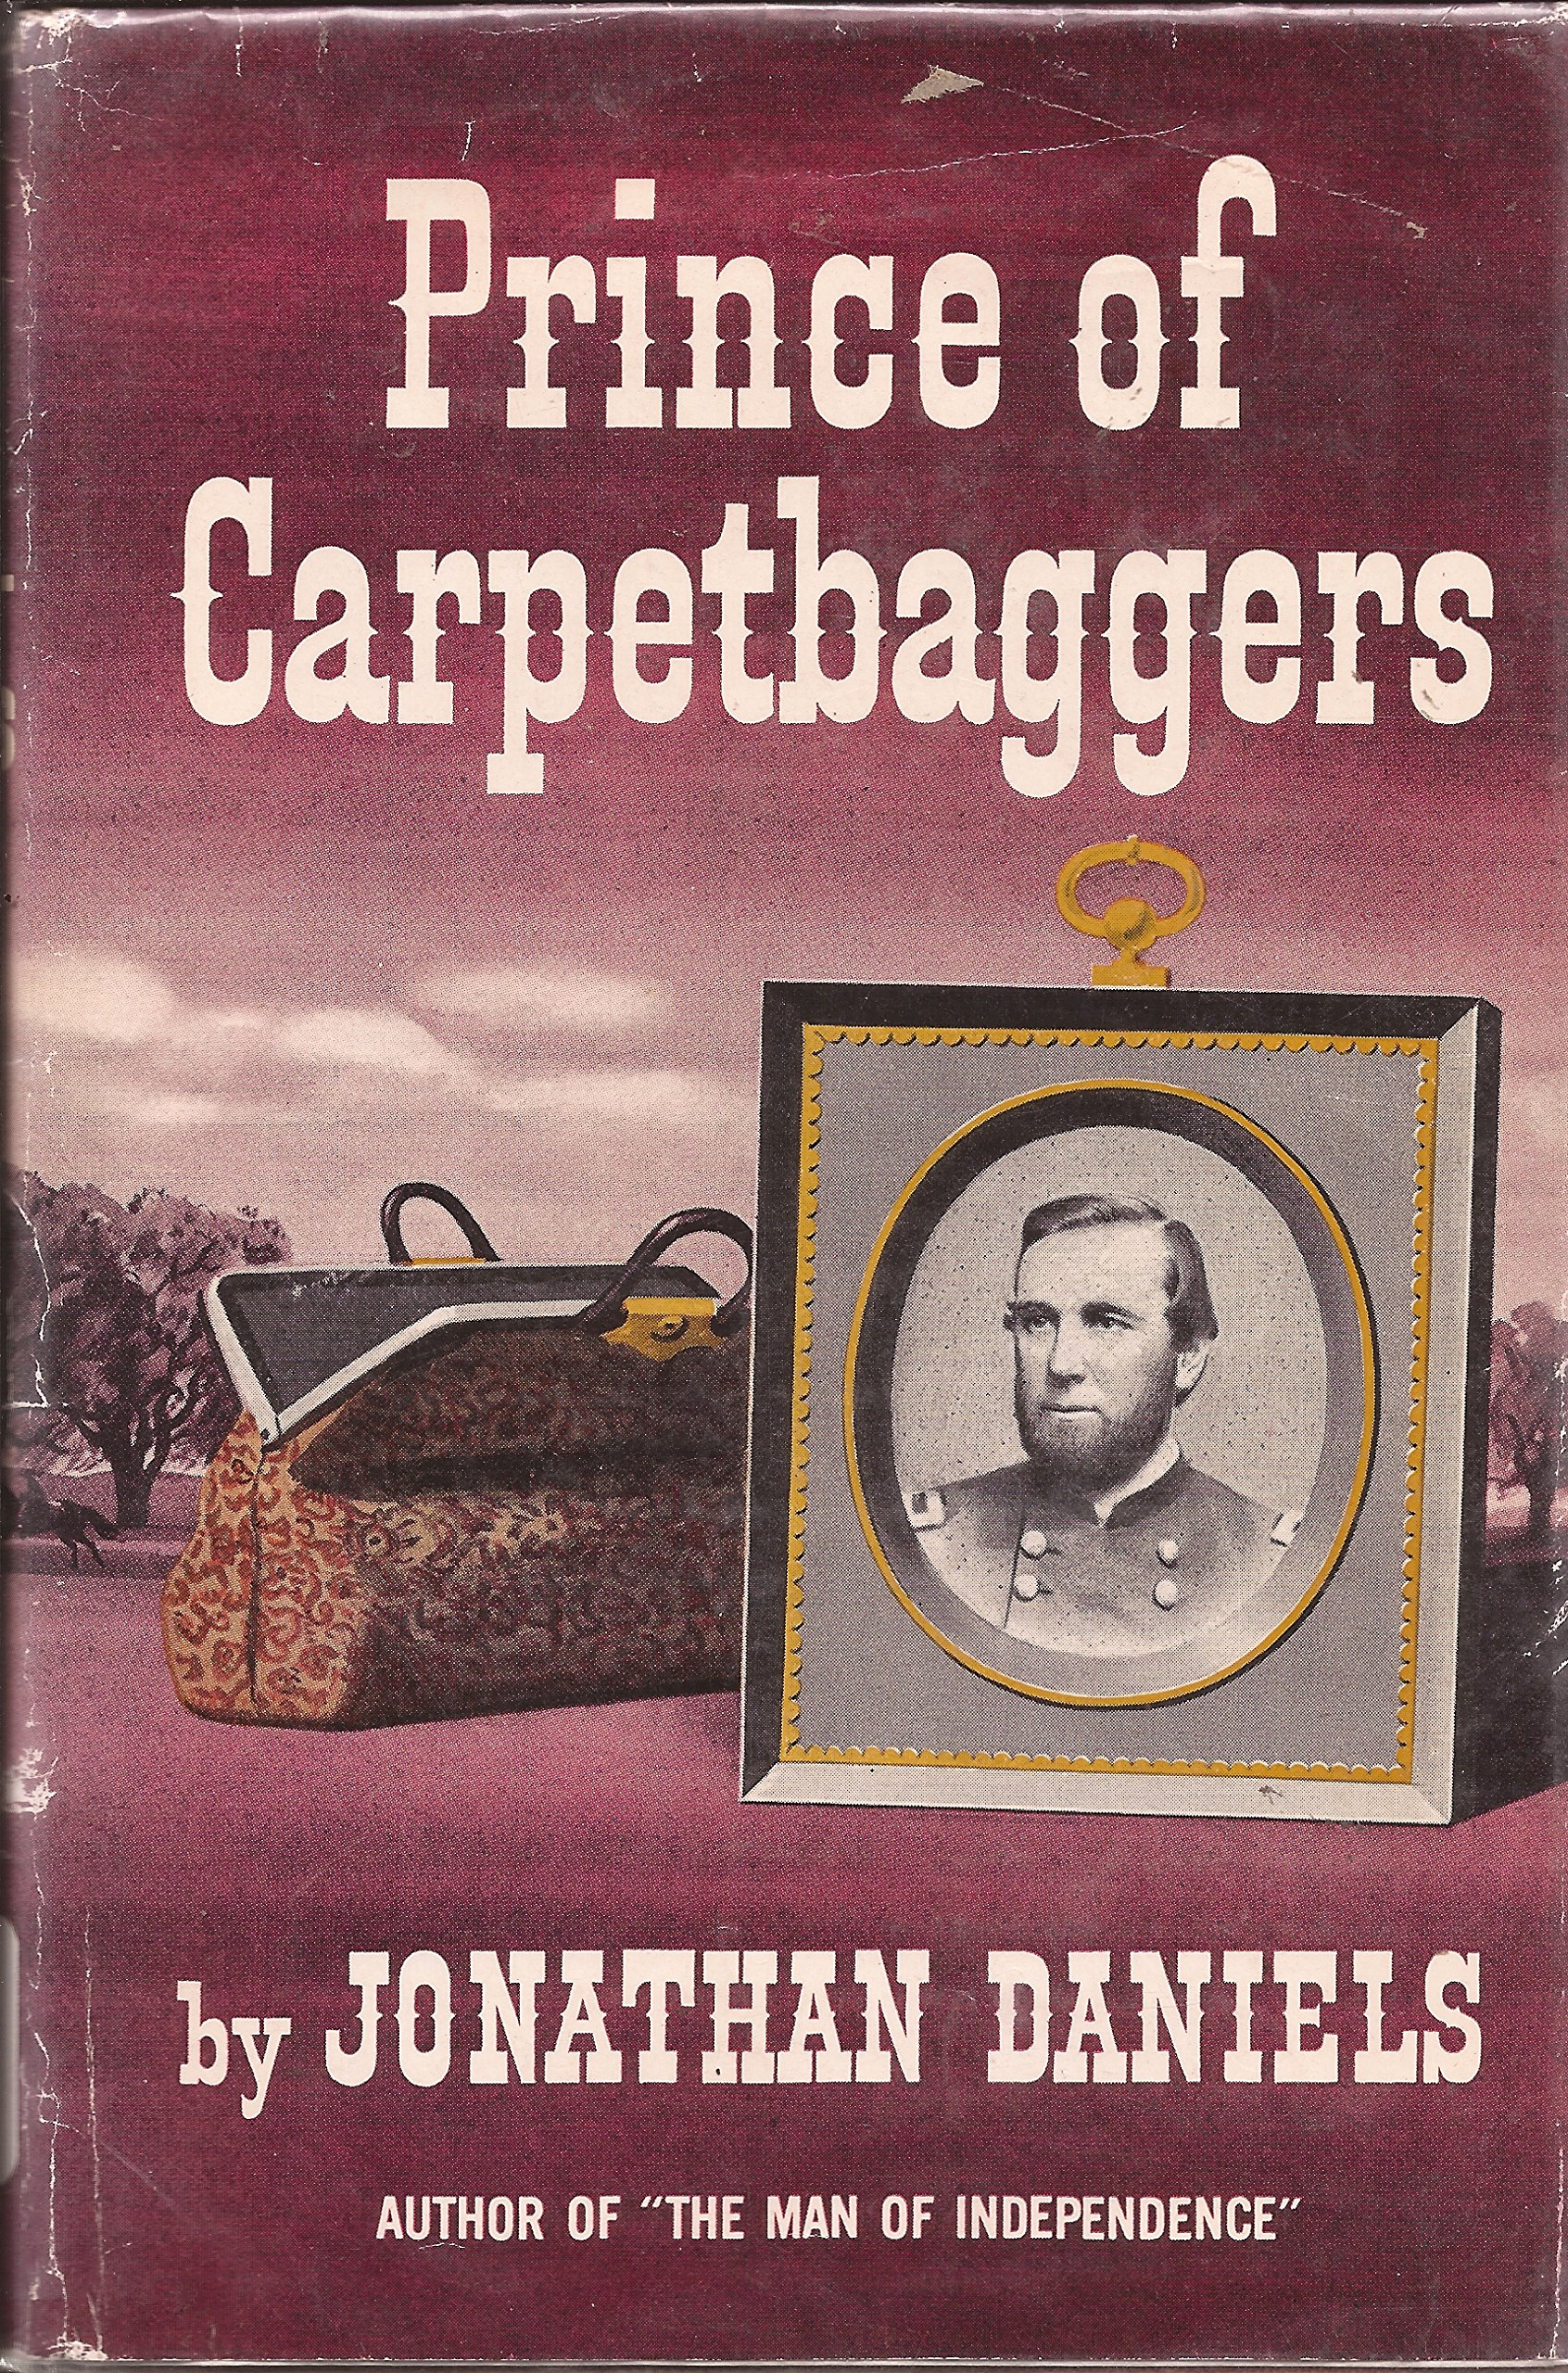 Prince of carpetbaggers: Daniels, Jonathan: 9780837174662: Amazon ...